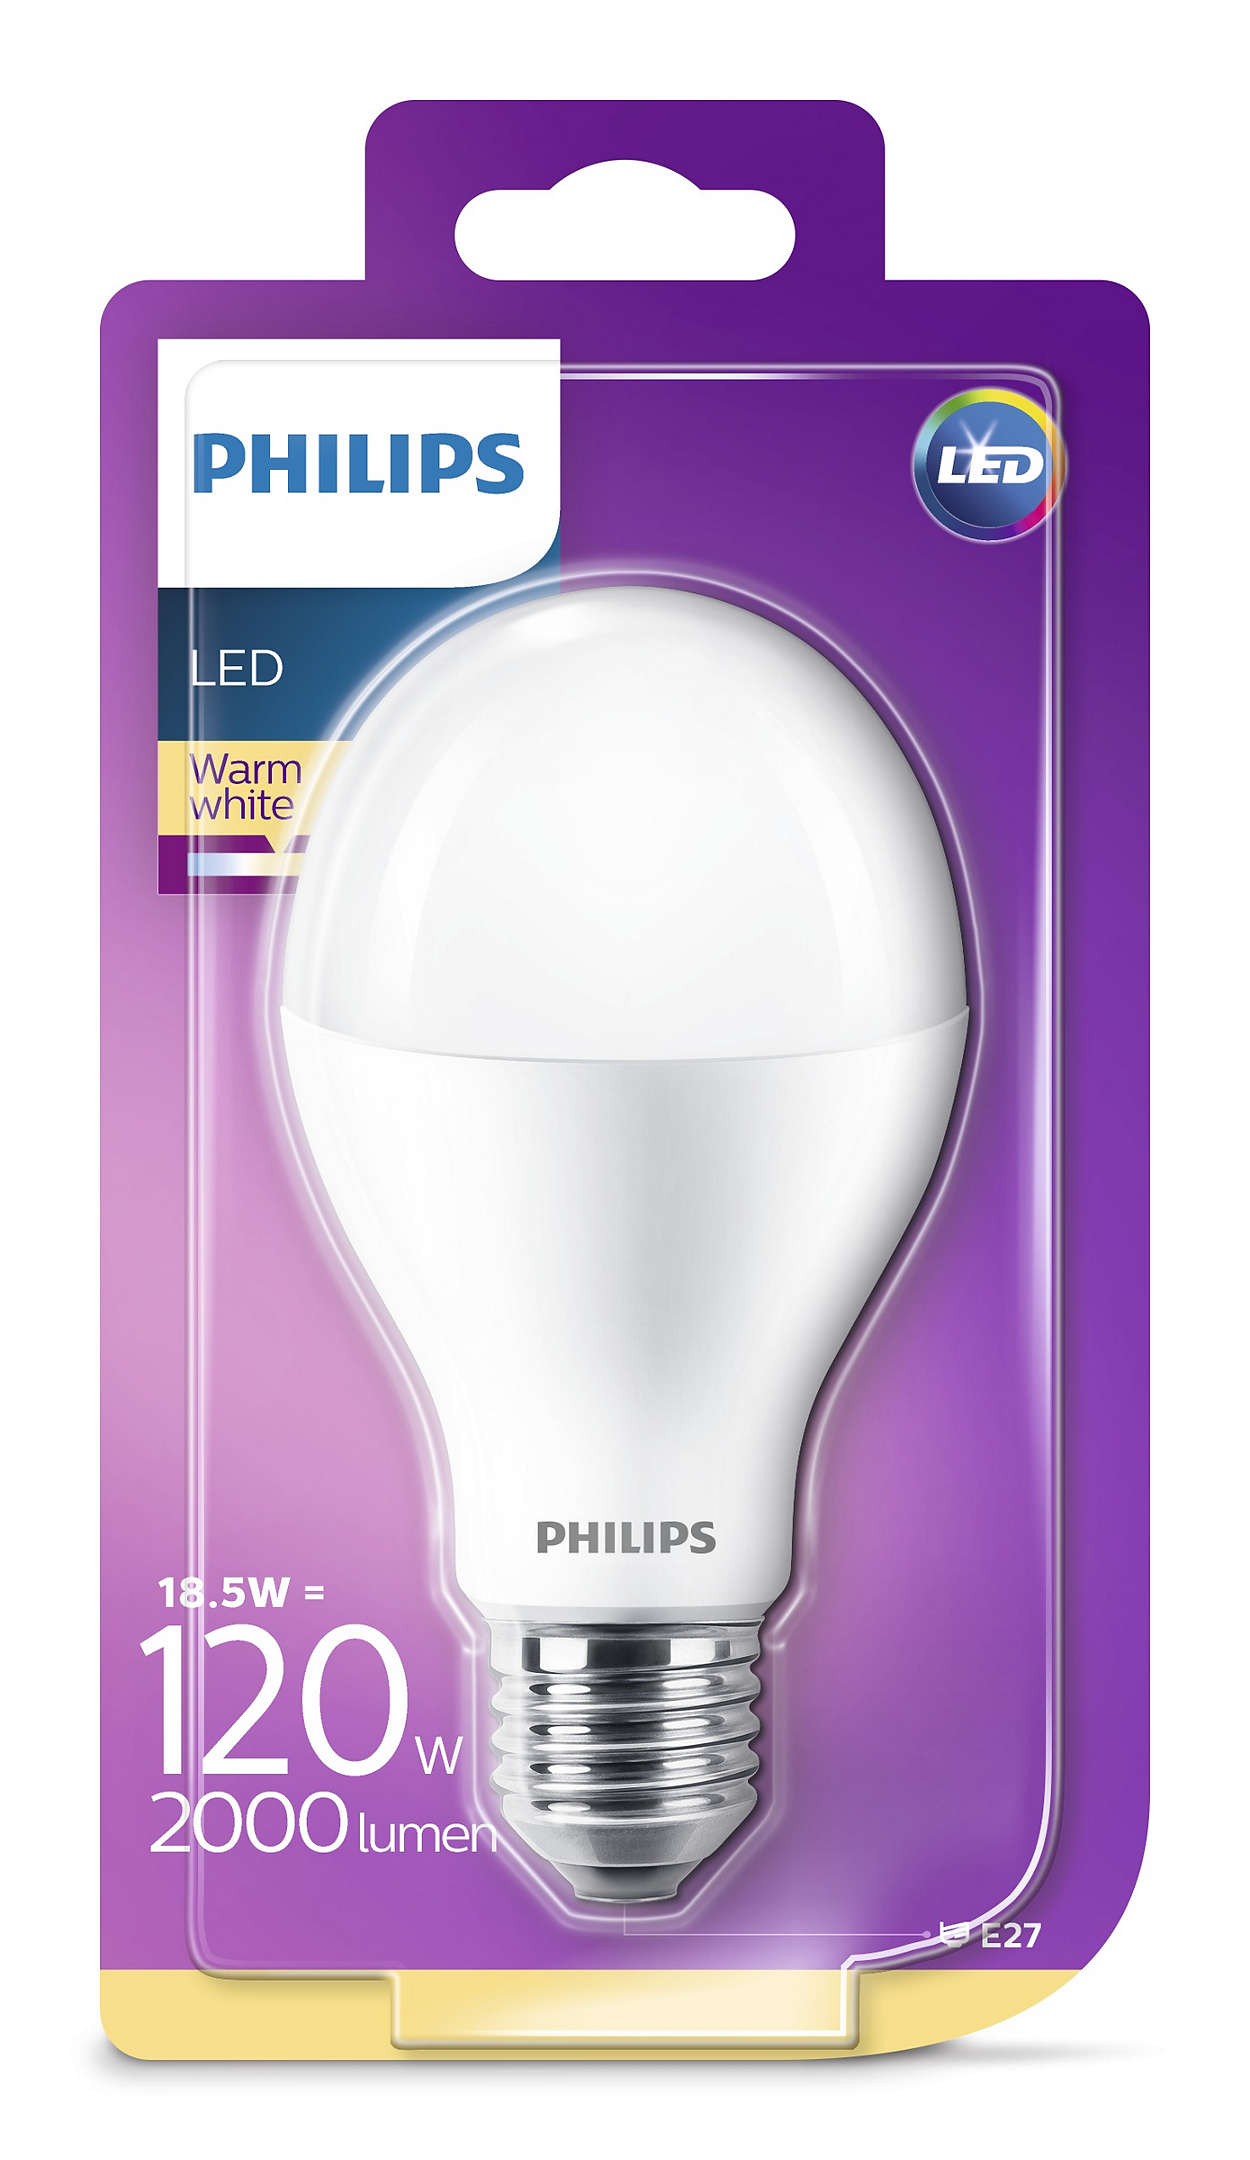 PHILIPS Consumer LED bulb 18.5-120W A67 E27 827 FR ND